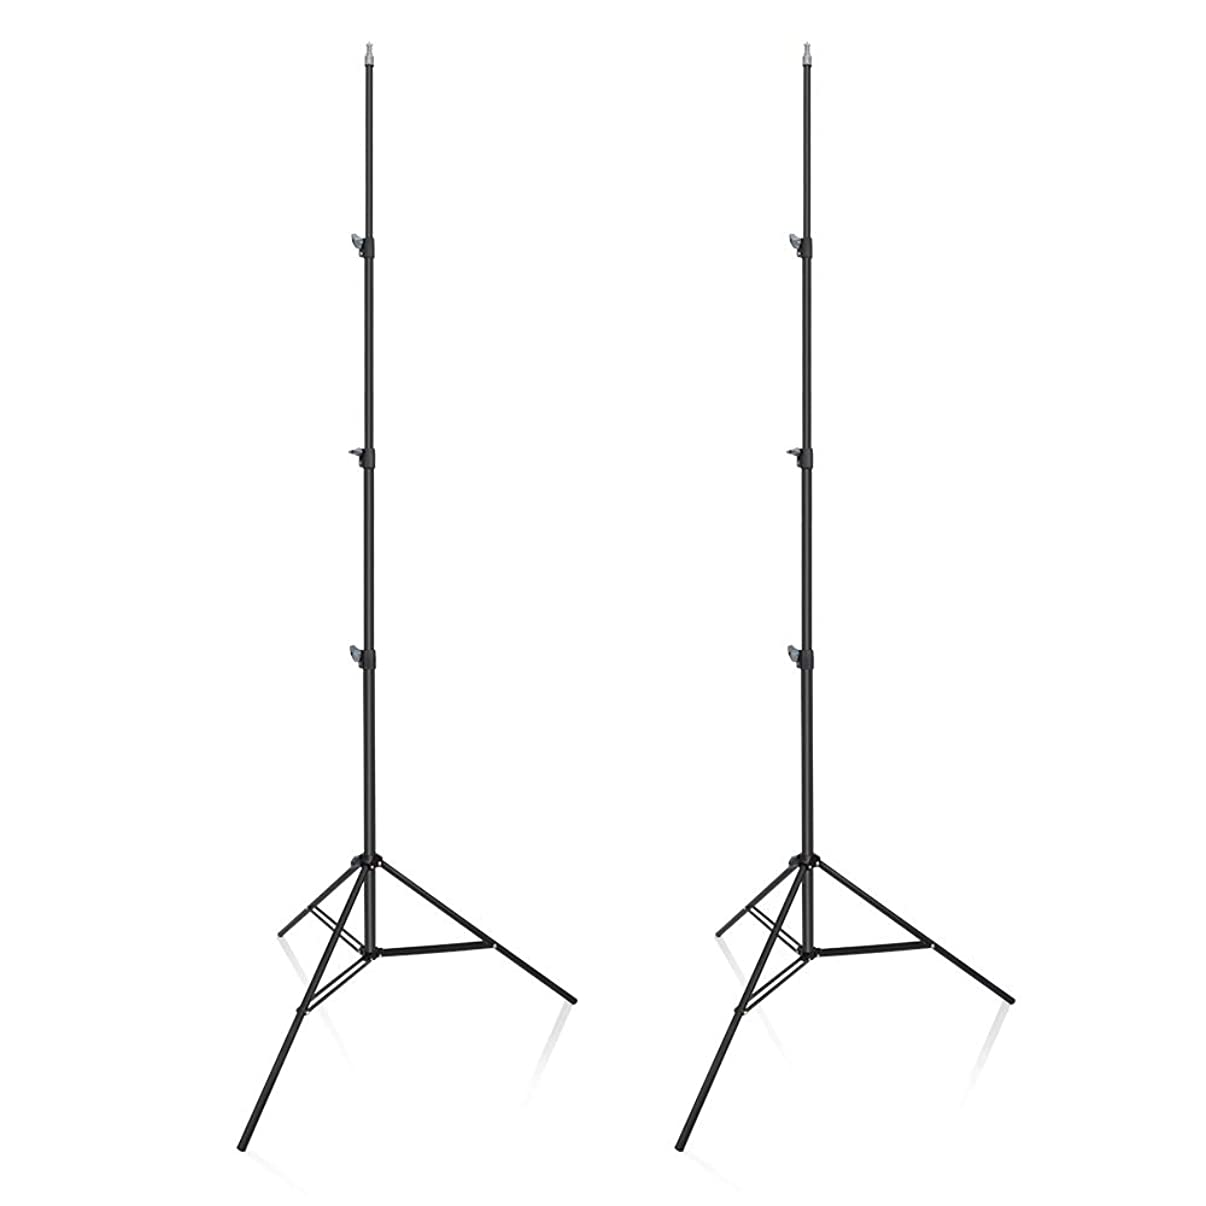 UTEBIT 10 Foot Premium Heavy Duty Light Stand 2 Pack Frosted Material with 1/4 Screw 118 in Tall Photo Flash Reflector Tripod Stands Kit High Adjustable 90-300cm for Camera Photography Video Studio